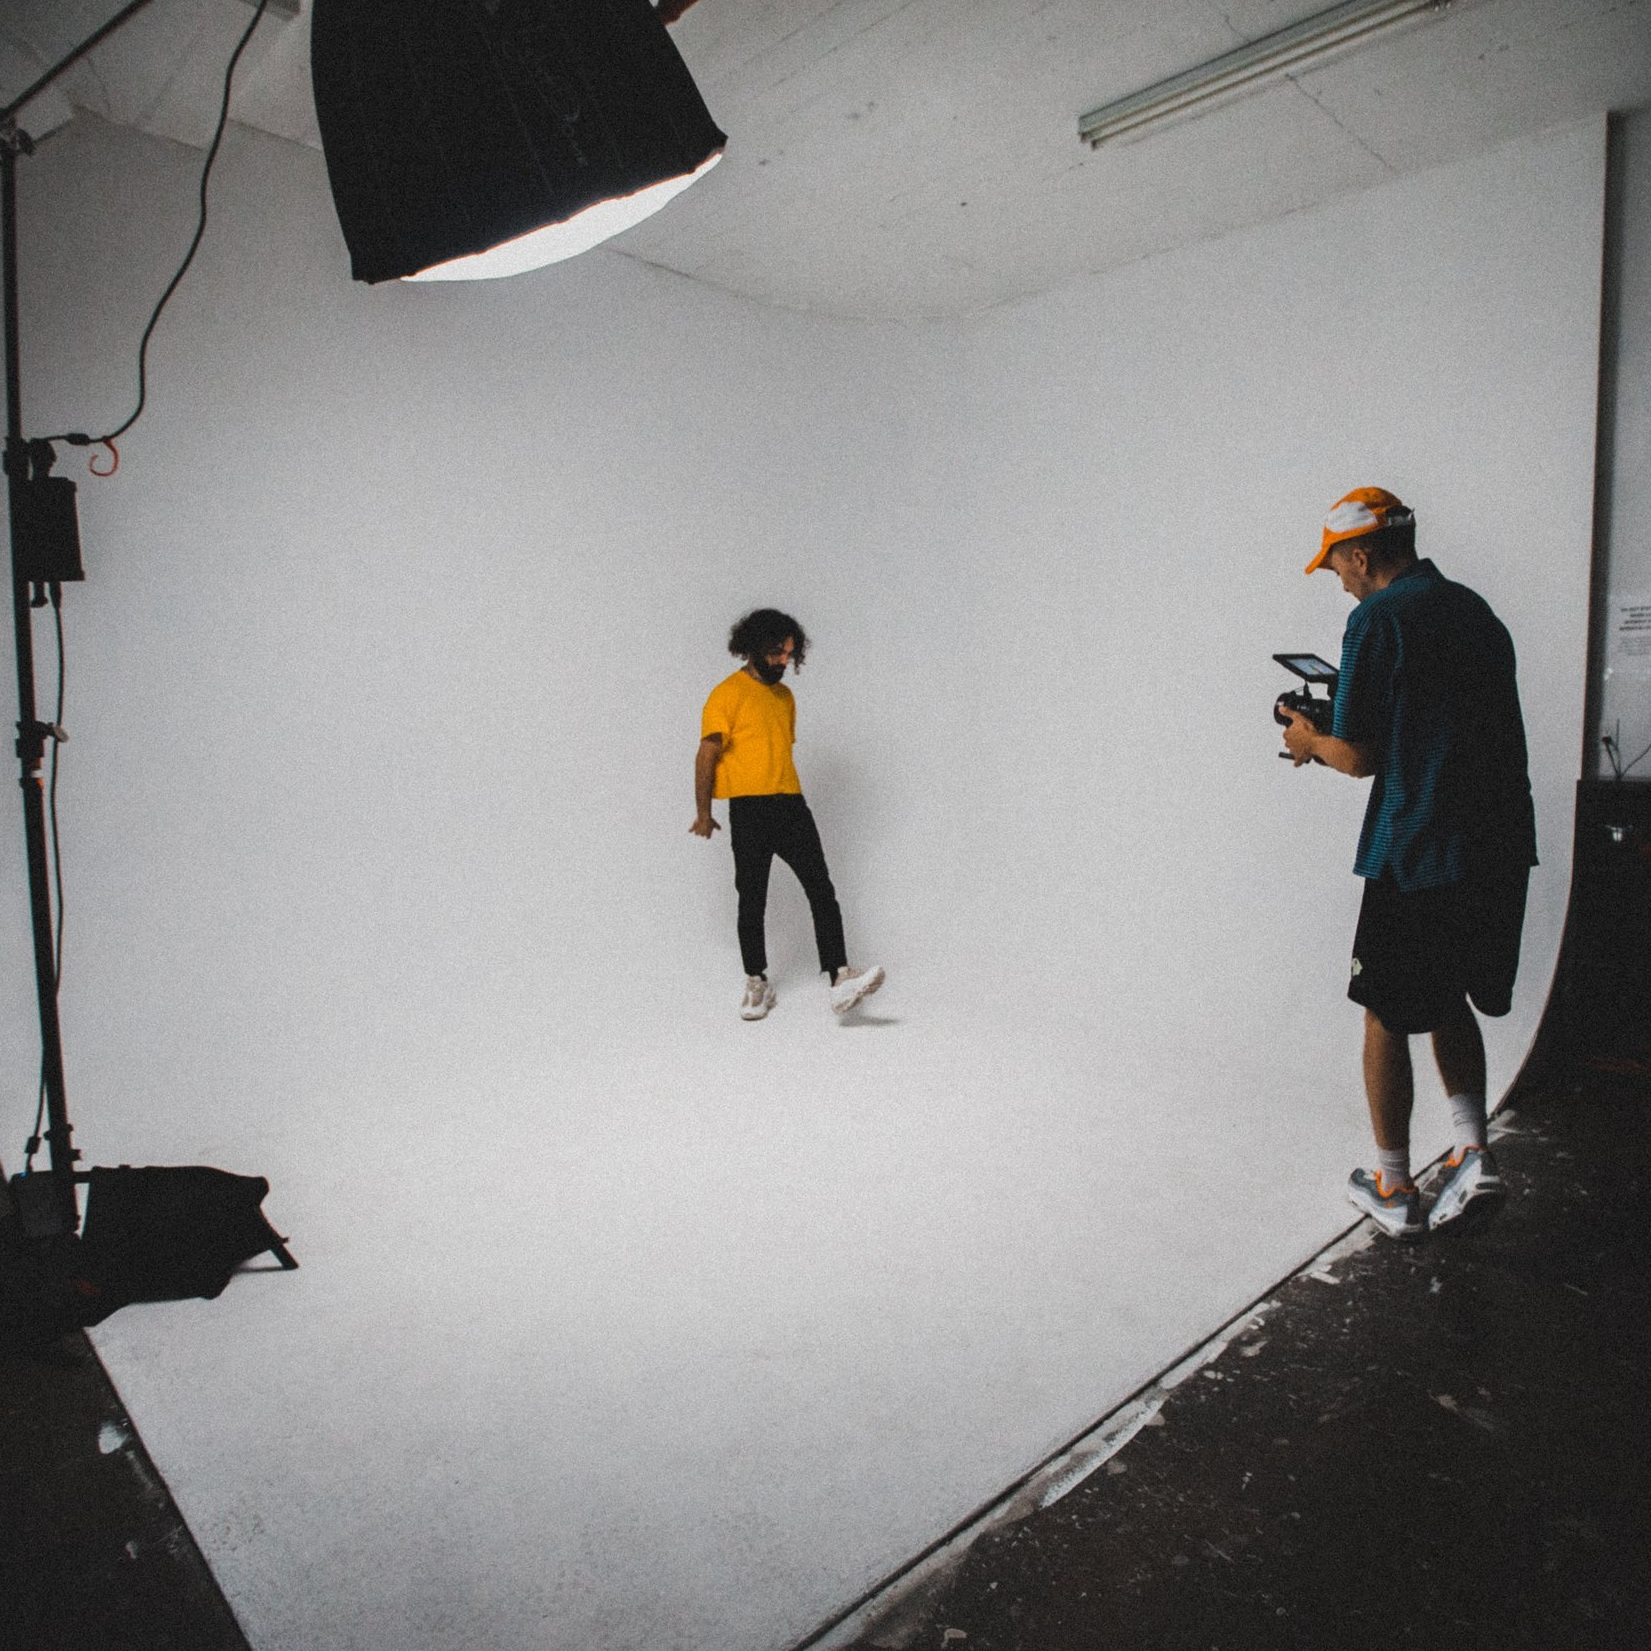 PHOTO SHOOT COACH - Engagement photos? Headshots? Dating site pics? Publicity images? We've got you covered with prep consultation and on-site support!